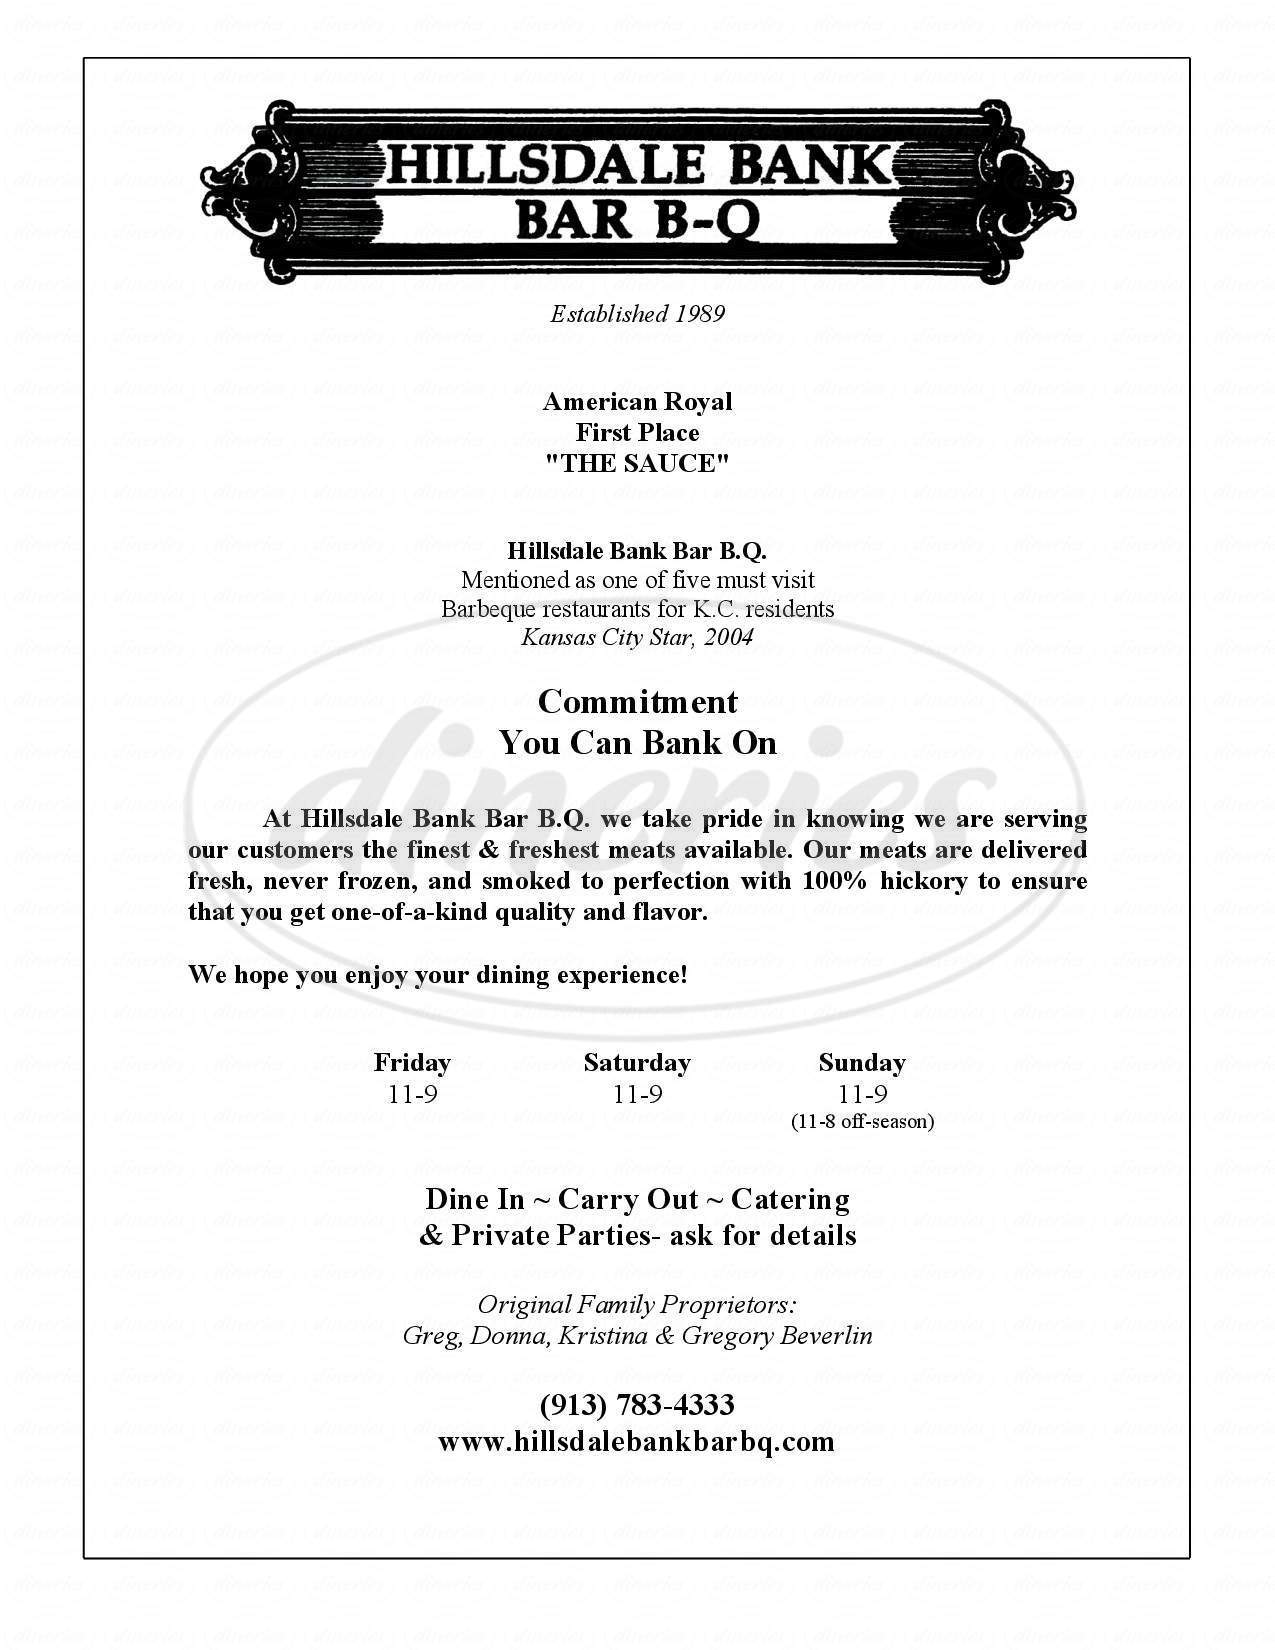 menu for Hillsdale Bank B-B-Q